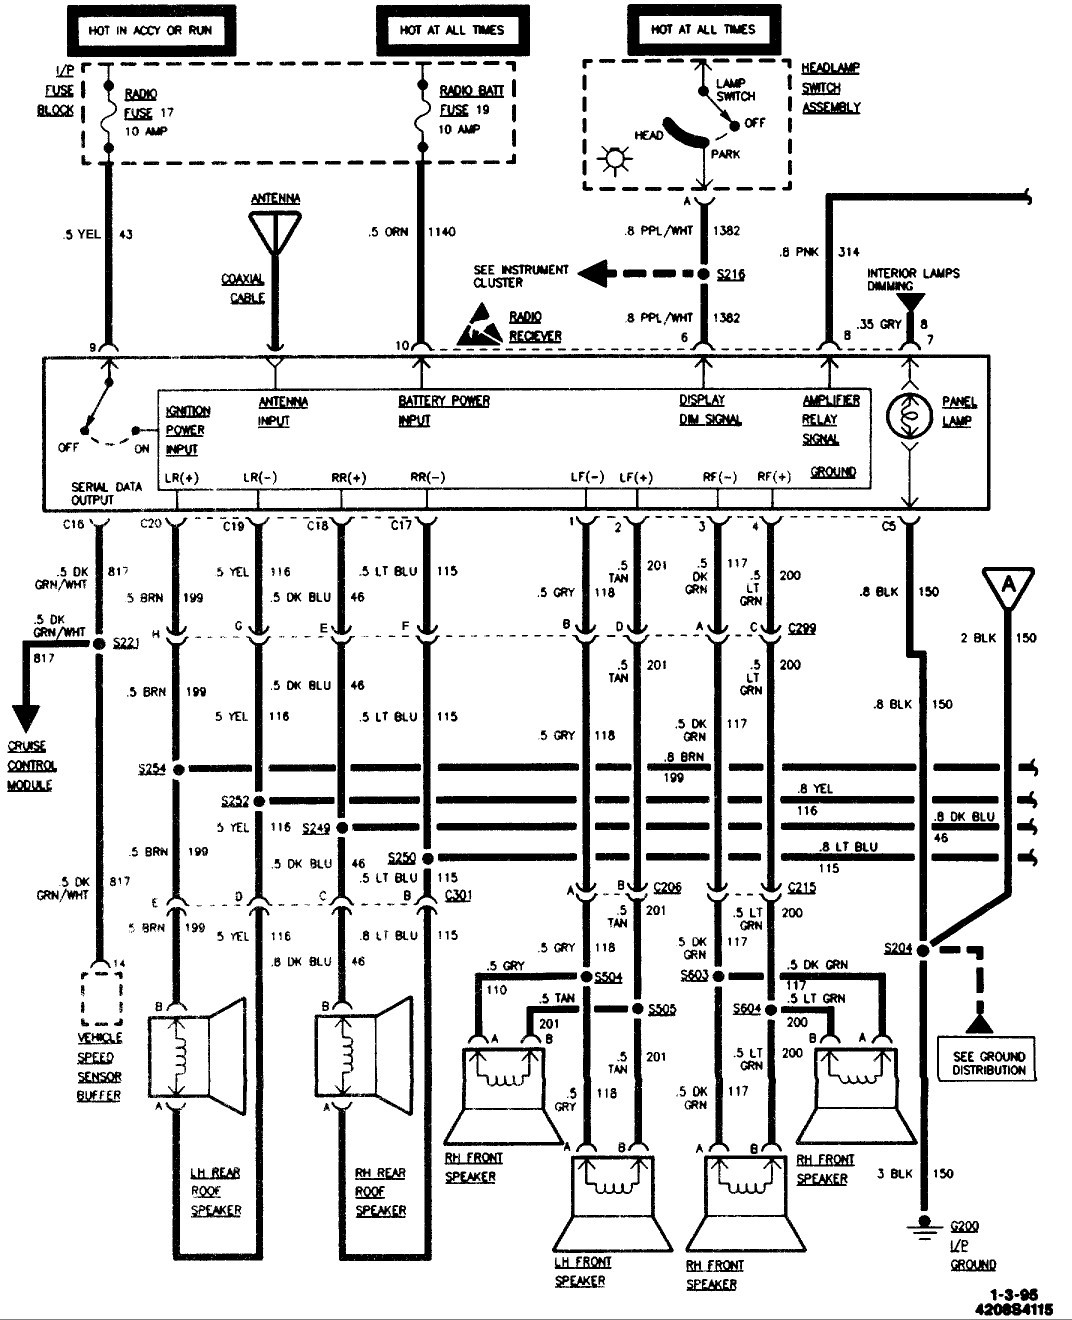 1995 Chevy Silverado Radio Wiring Diagram Wiring Diagram Sum Workstation Sum Workstation Pasticceriagele It